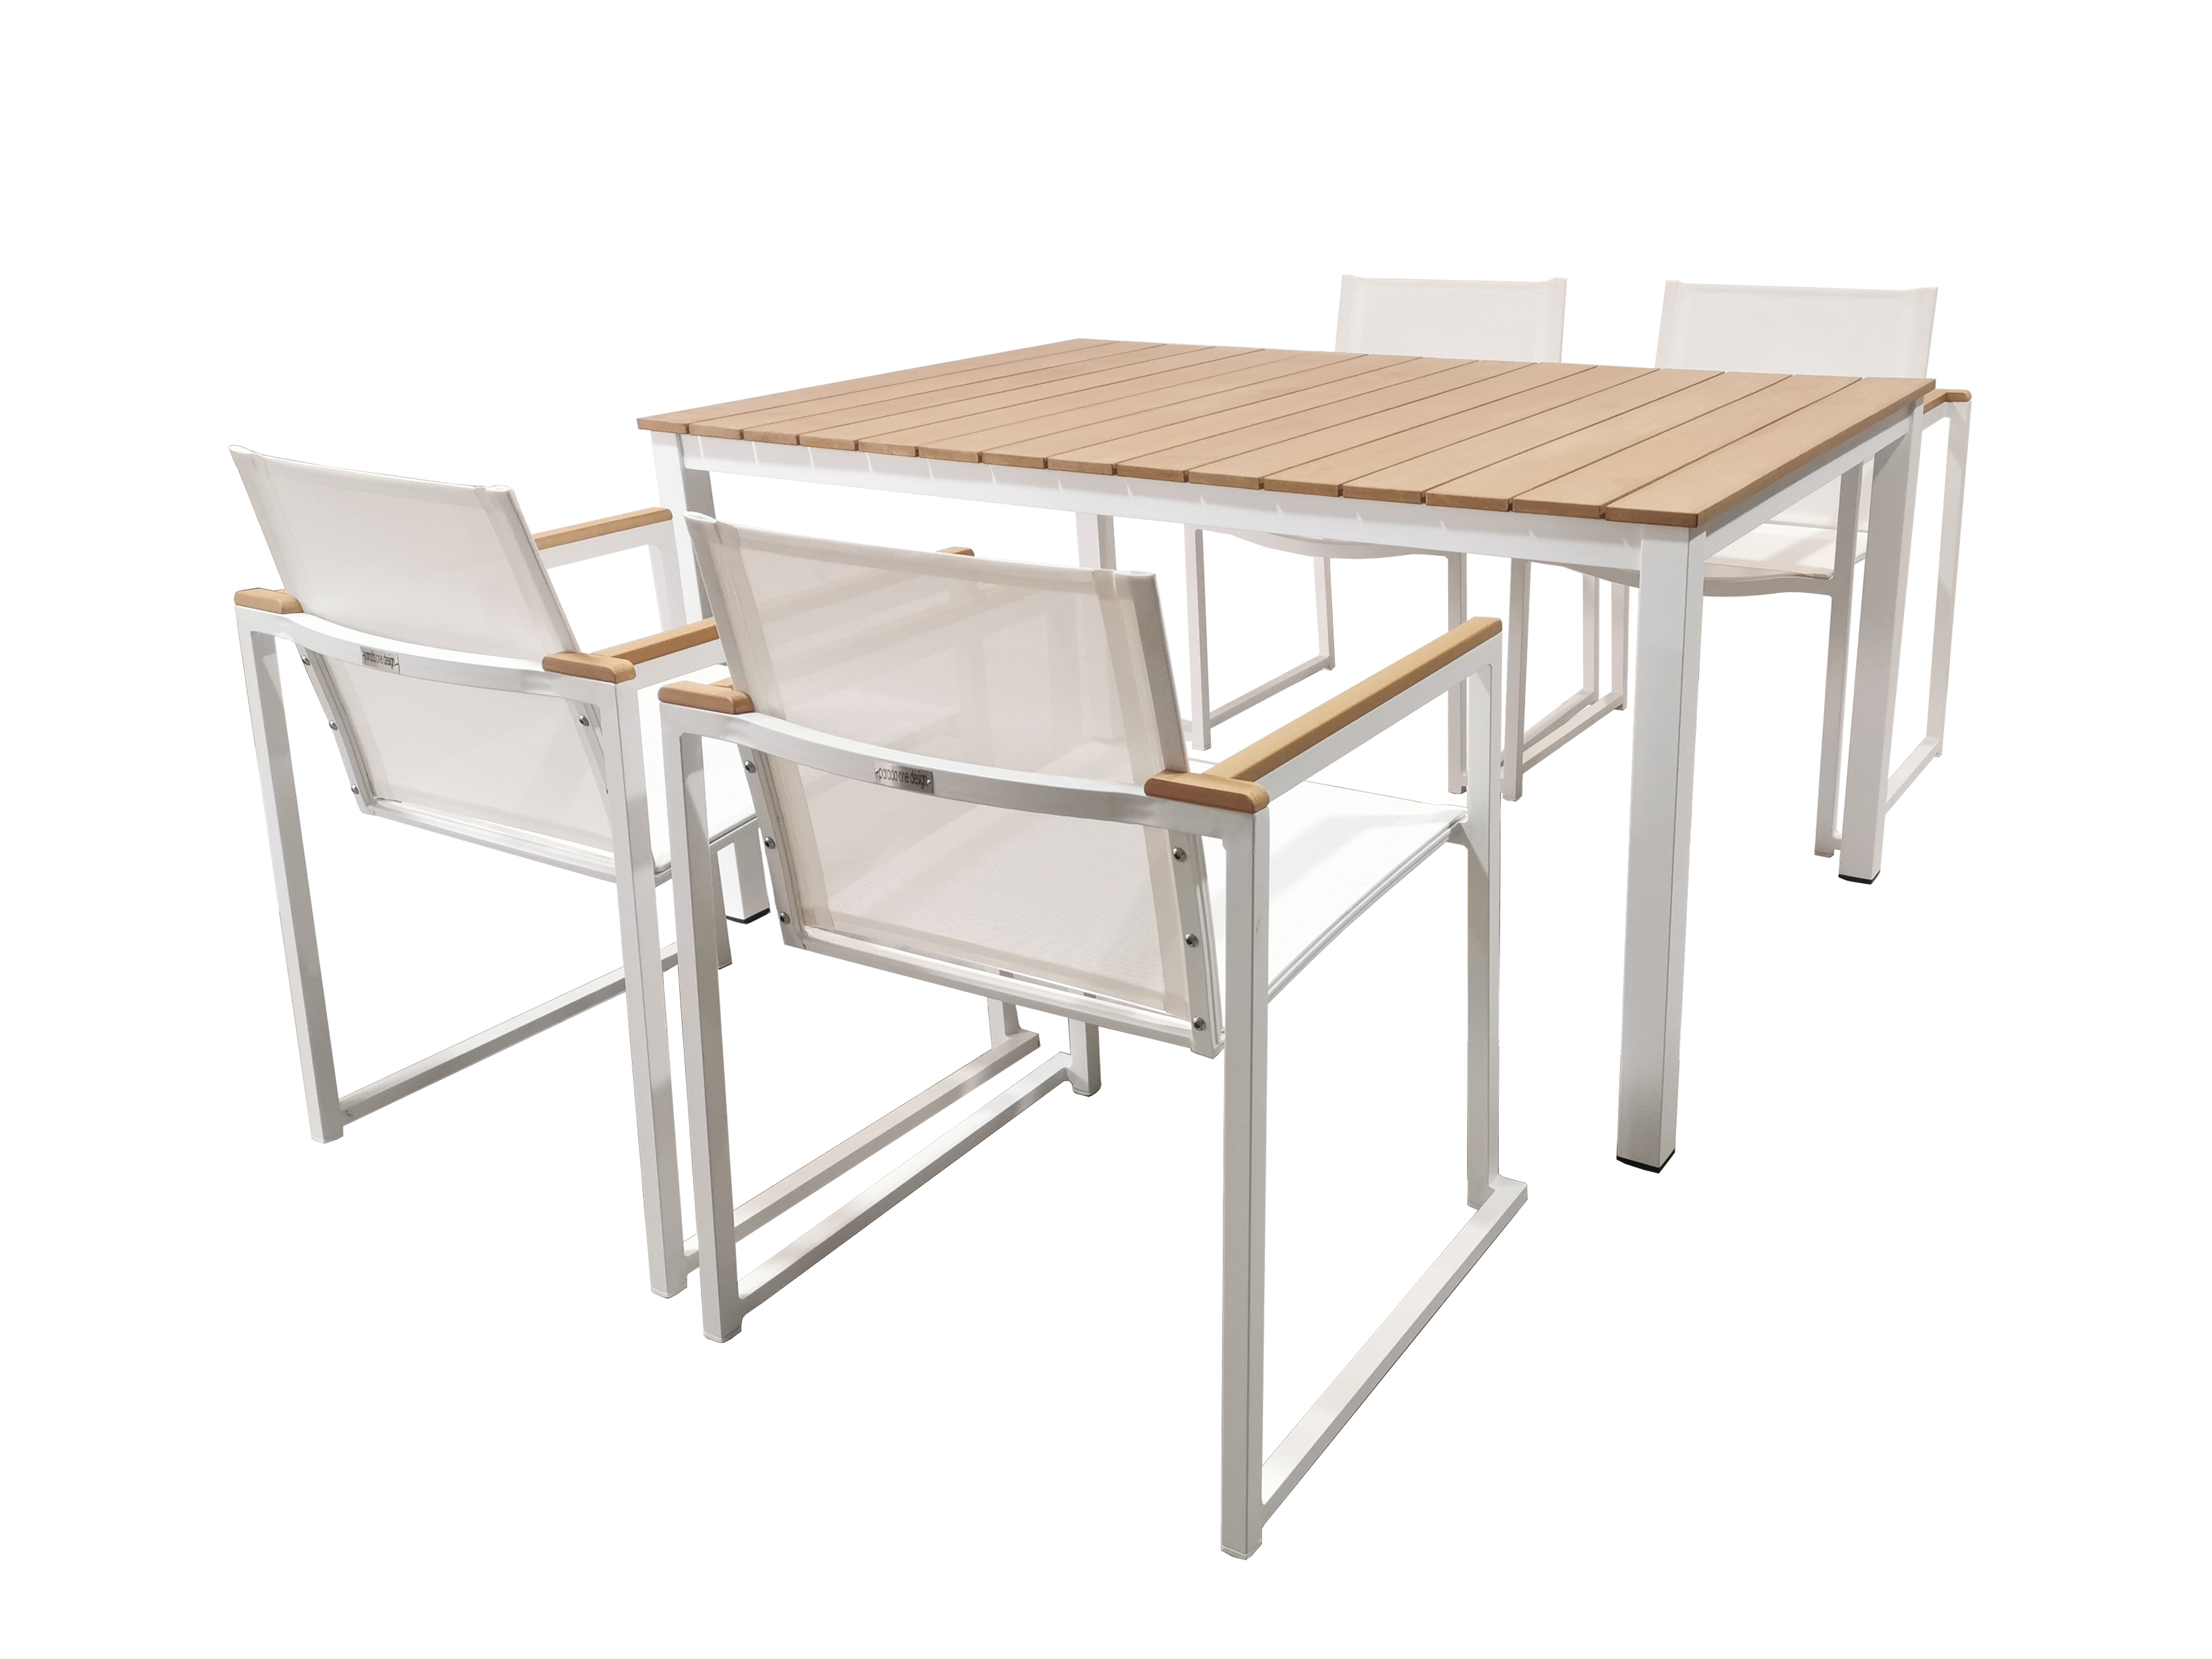 QUADRO DINING TABLE AW- QUADRO ARM CHAIR AW SET